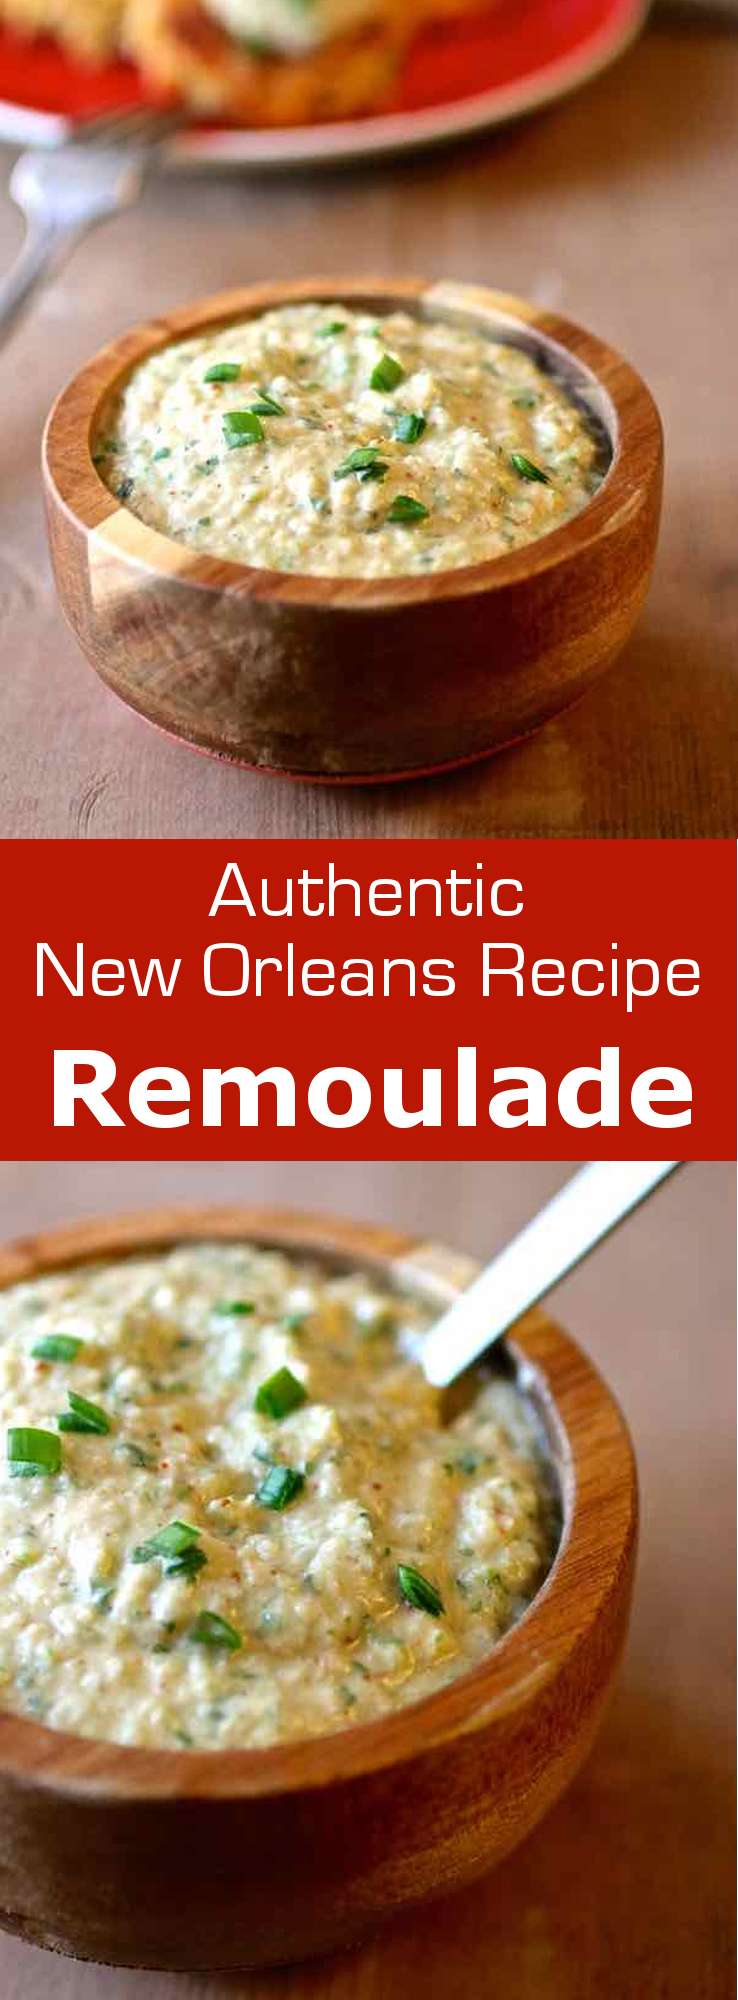 Remoulade sauce is a  condiment that originated in France and is now popular in Louisiana. It is often served with fish, seafood or cold meat. #sauce #NewOrleans #Louisiana #condiment #196flavors